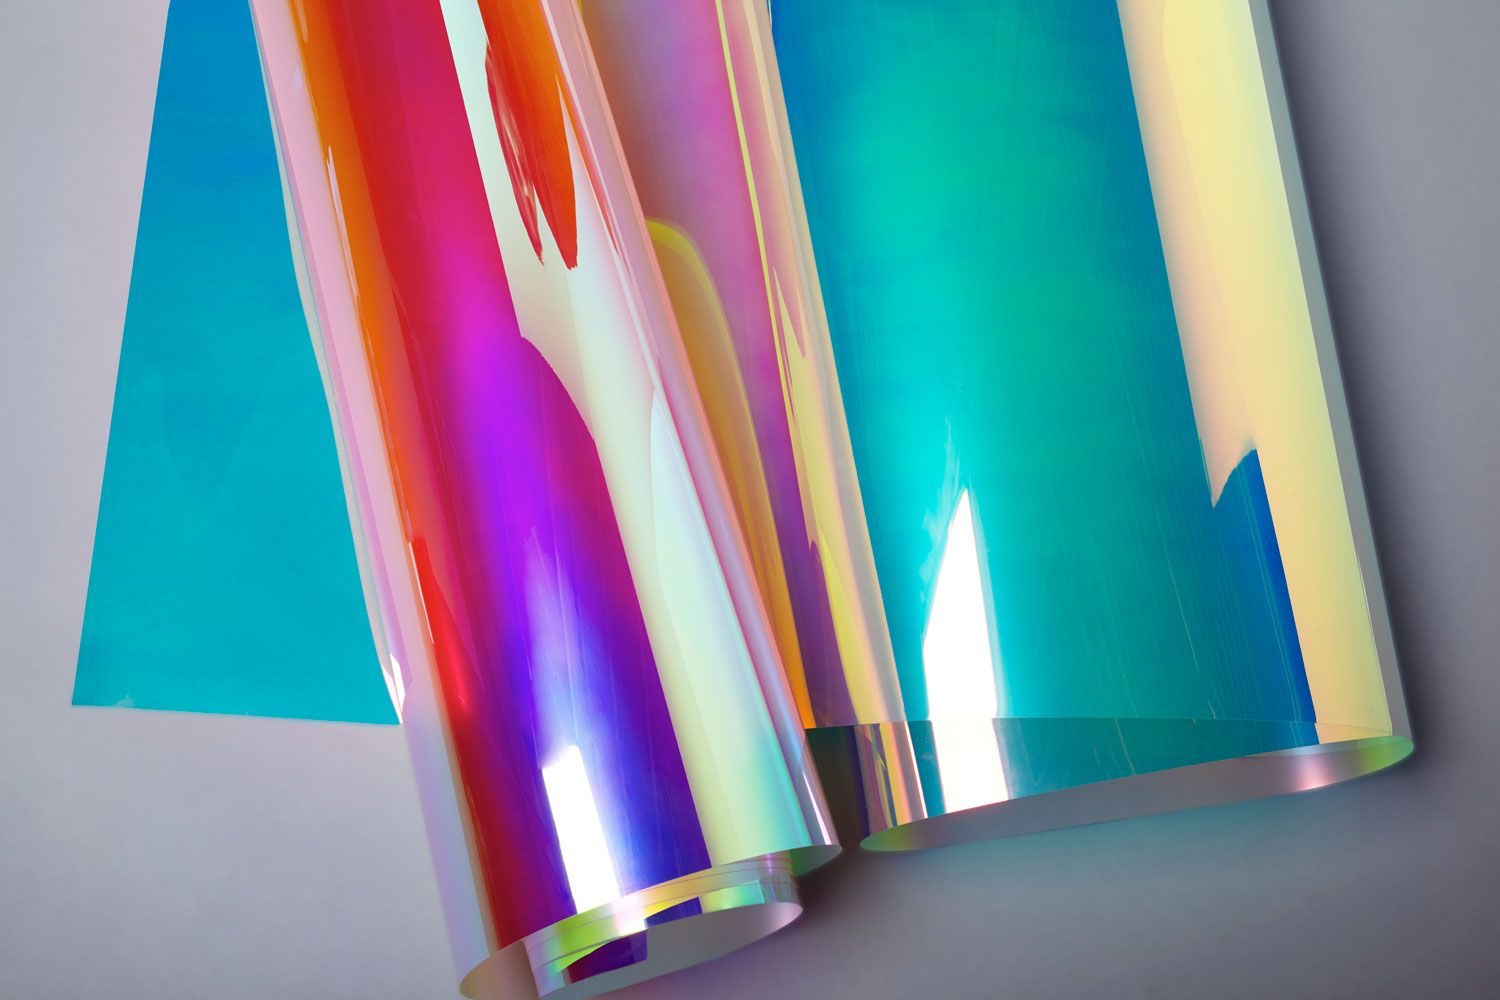 3m Dichroic Glass Finishes Come In Two Different Color